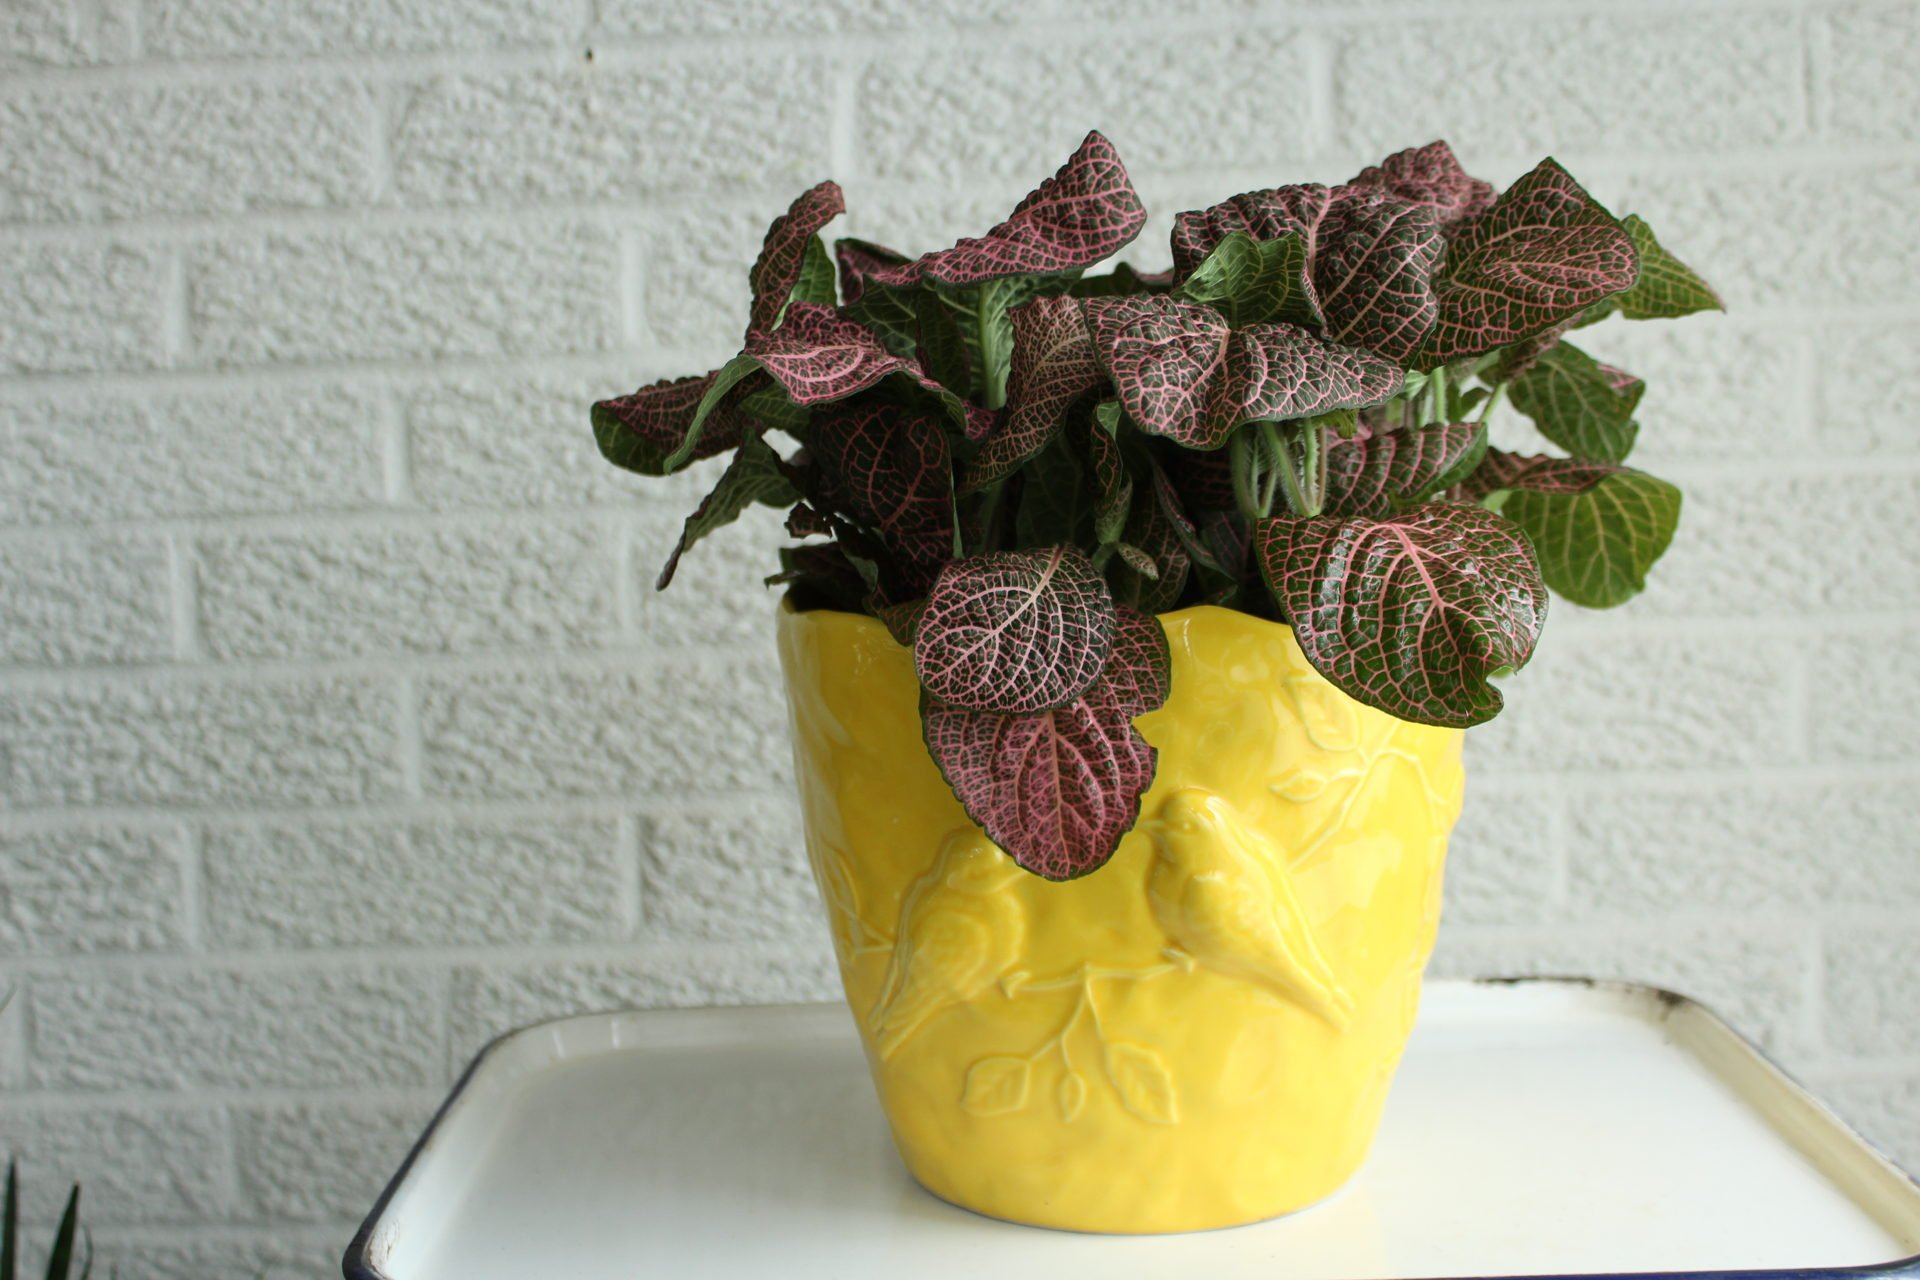 Love it in the yellow pot